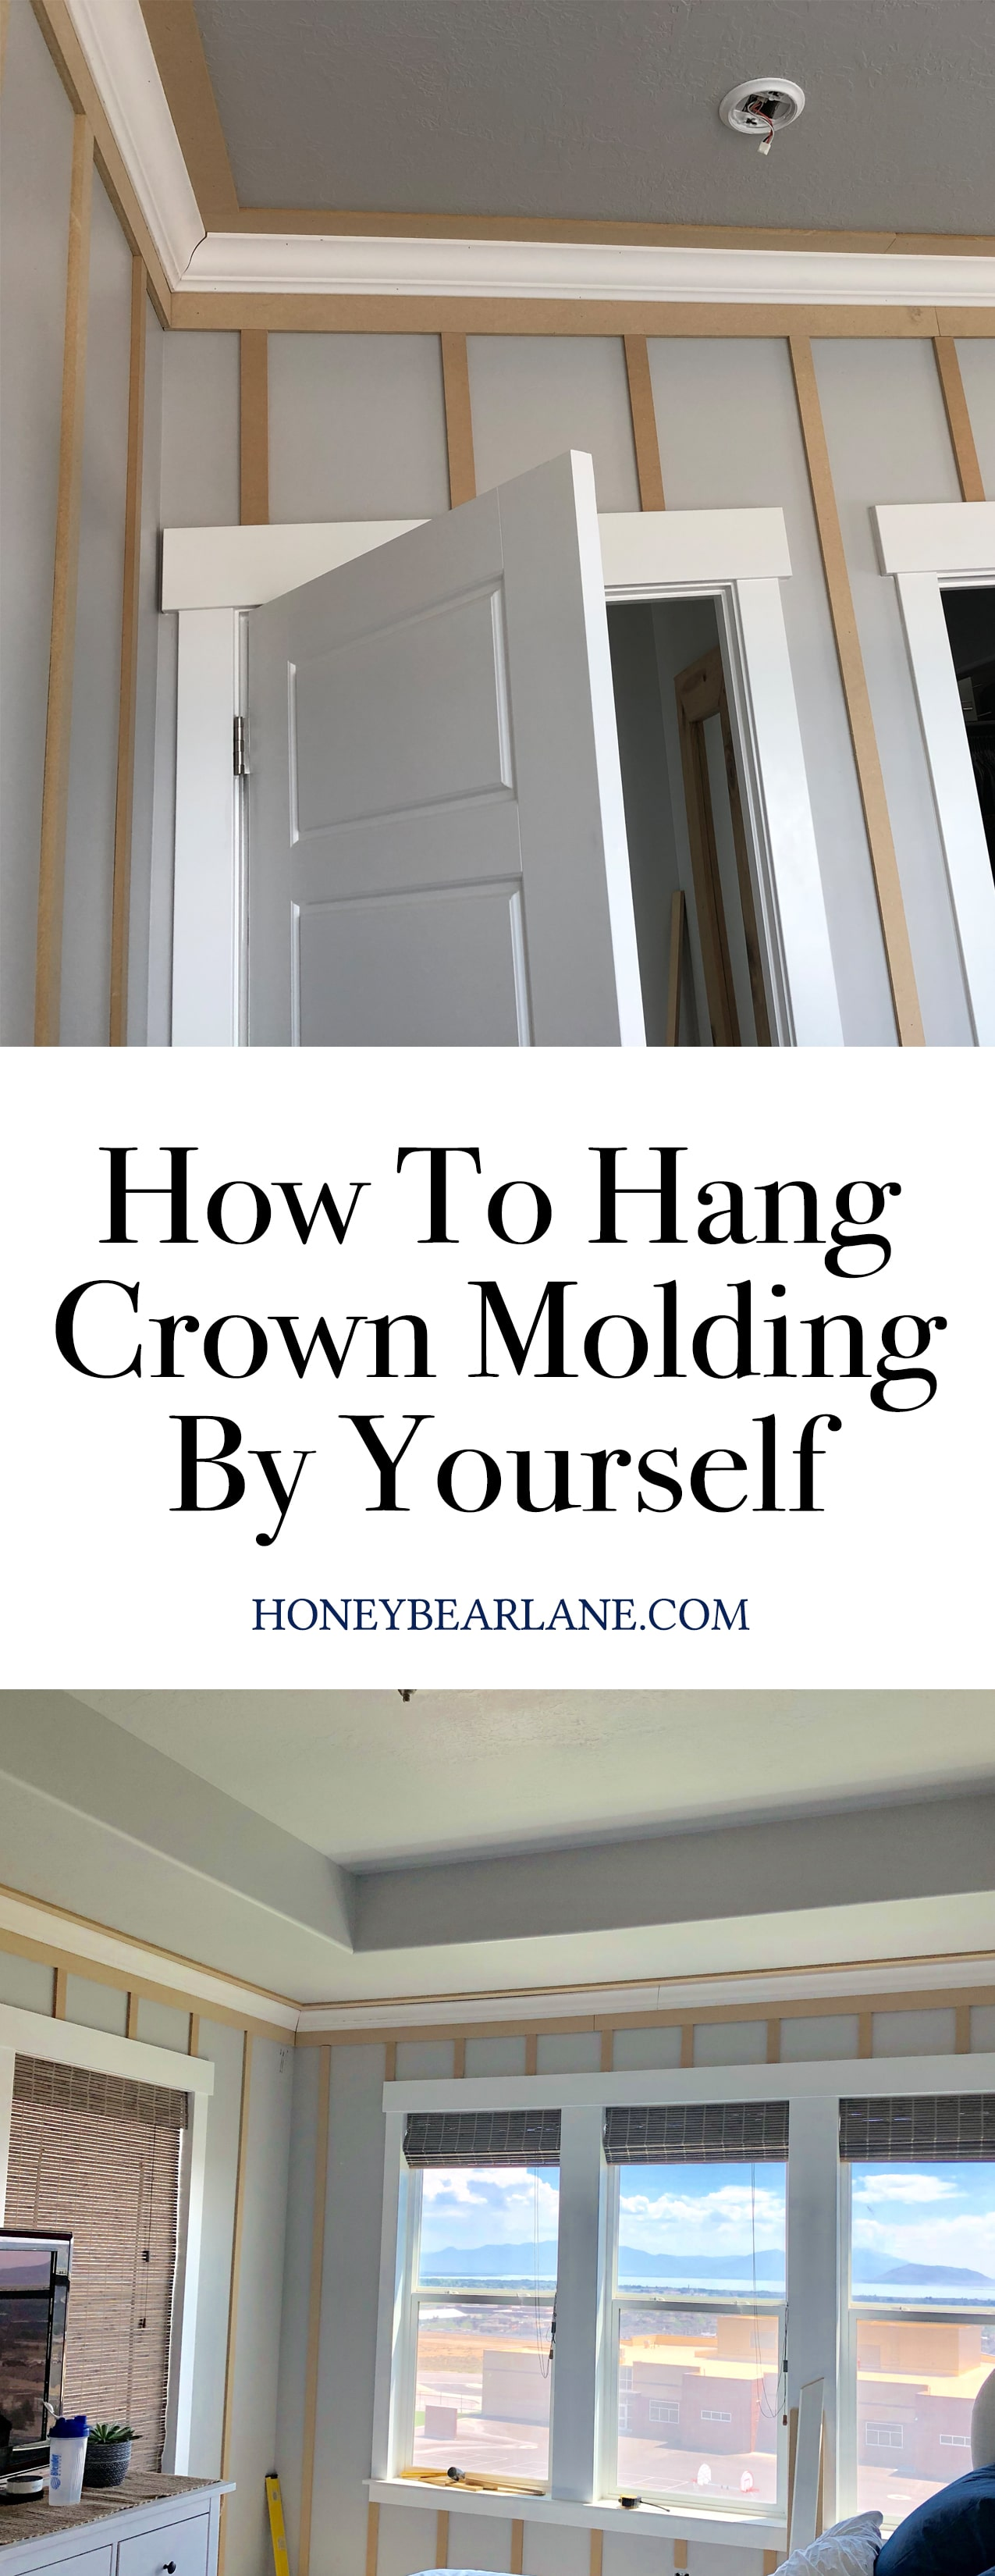 how to hang crown molding by yourself